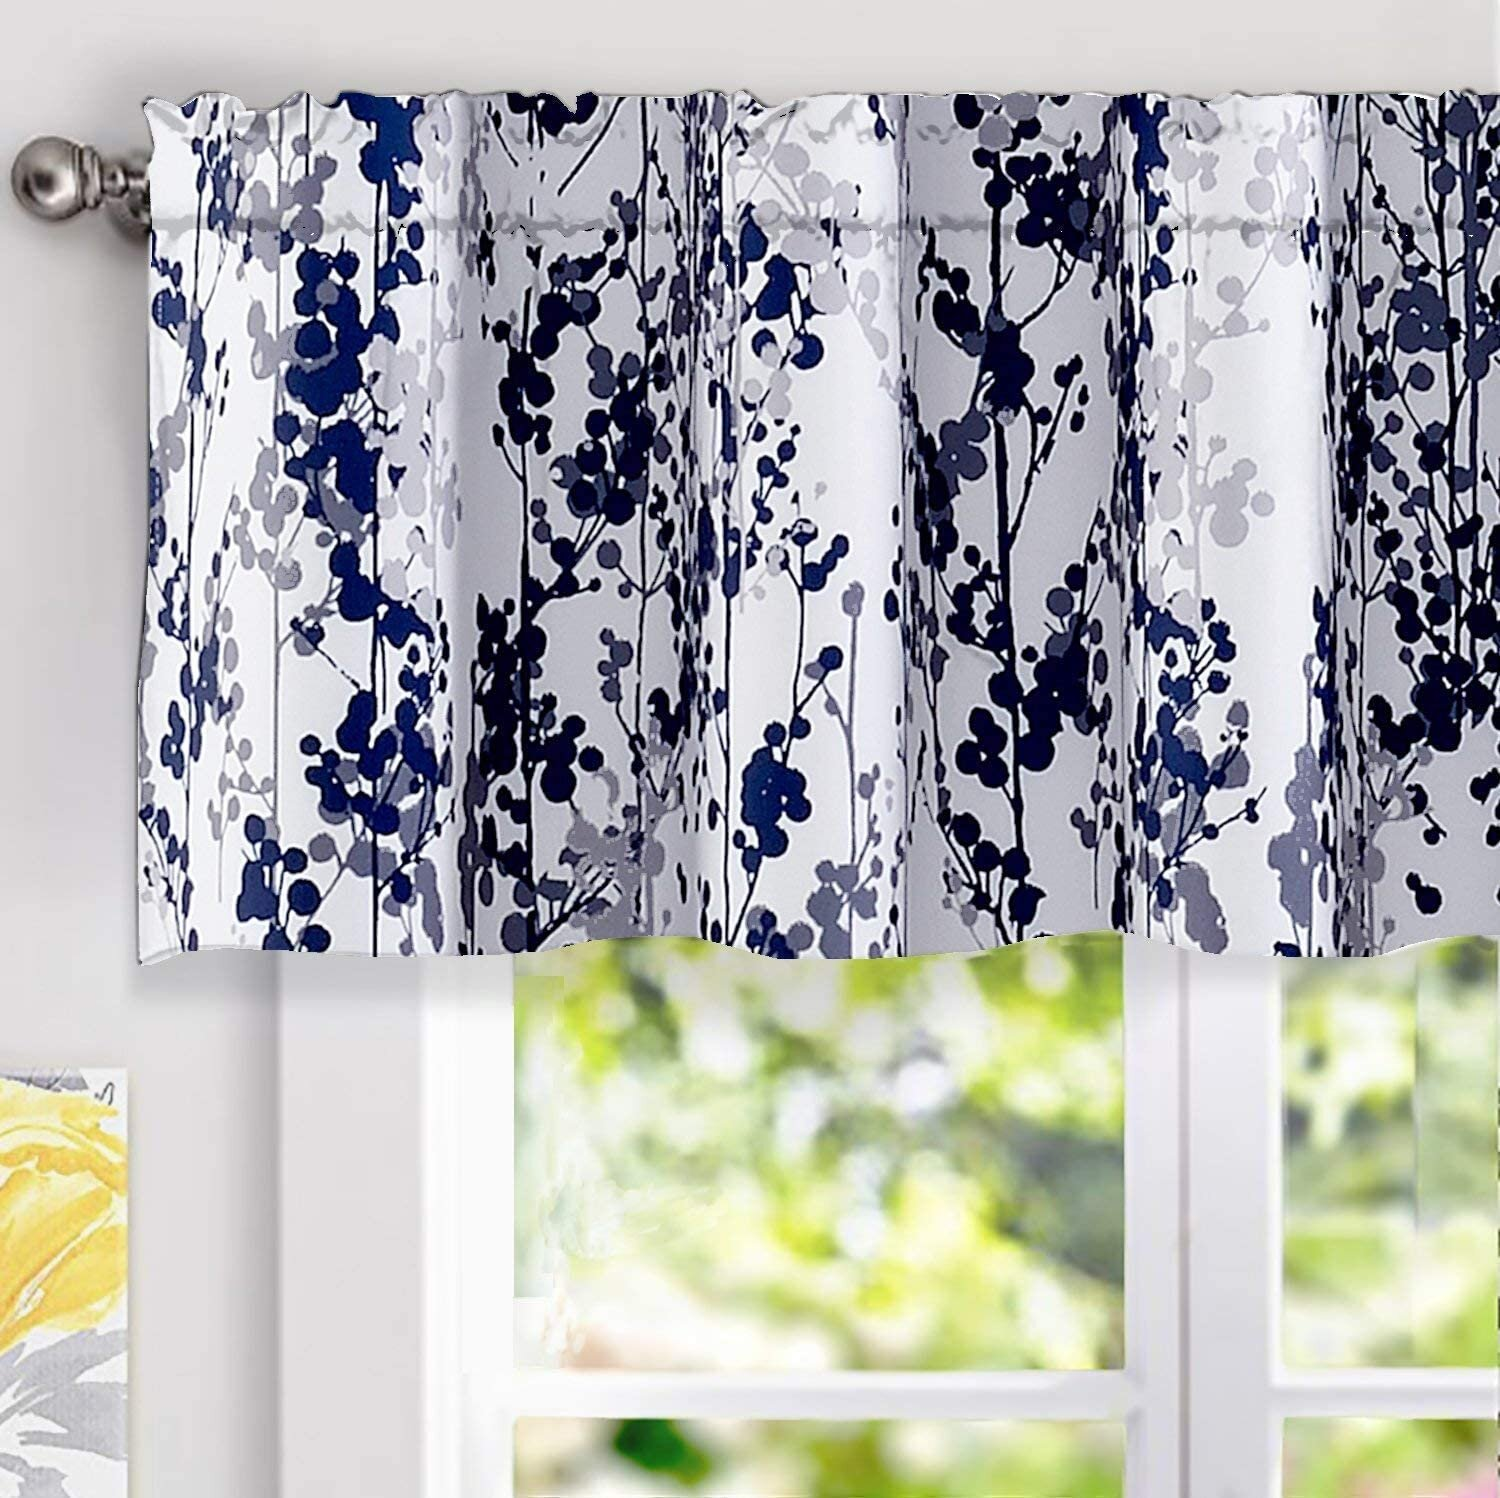 July Joy 3 Piece Cotton Kitchen Curtains And Valances Set For Small Windows Short Curtains 36 Inches Length For Cafe Bathroom Tab Top 56 X 36 Black Curtains Drapes Mesralyoum Tiers